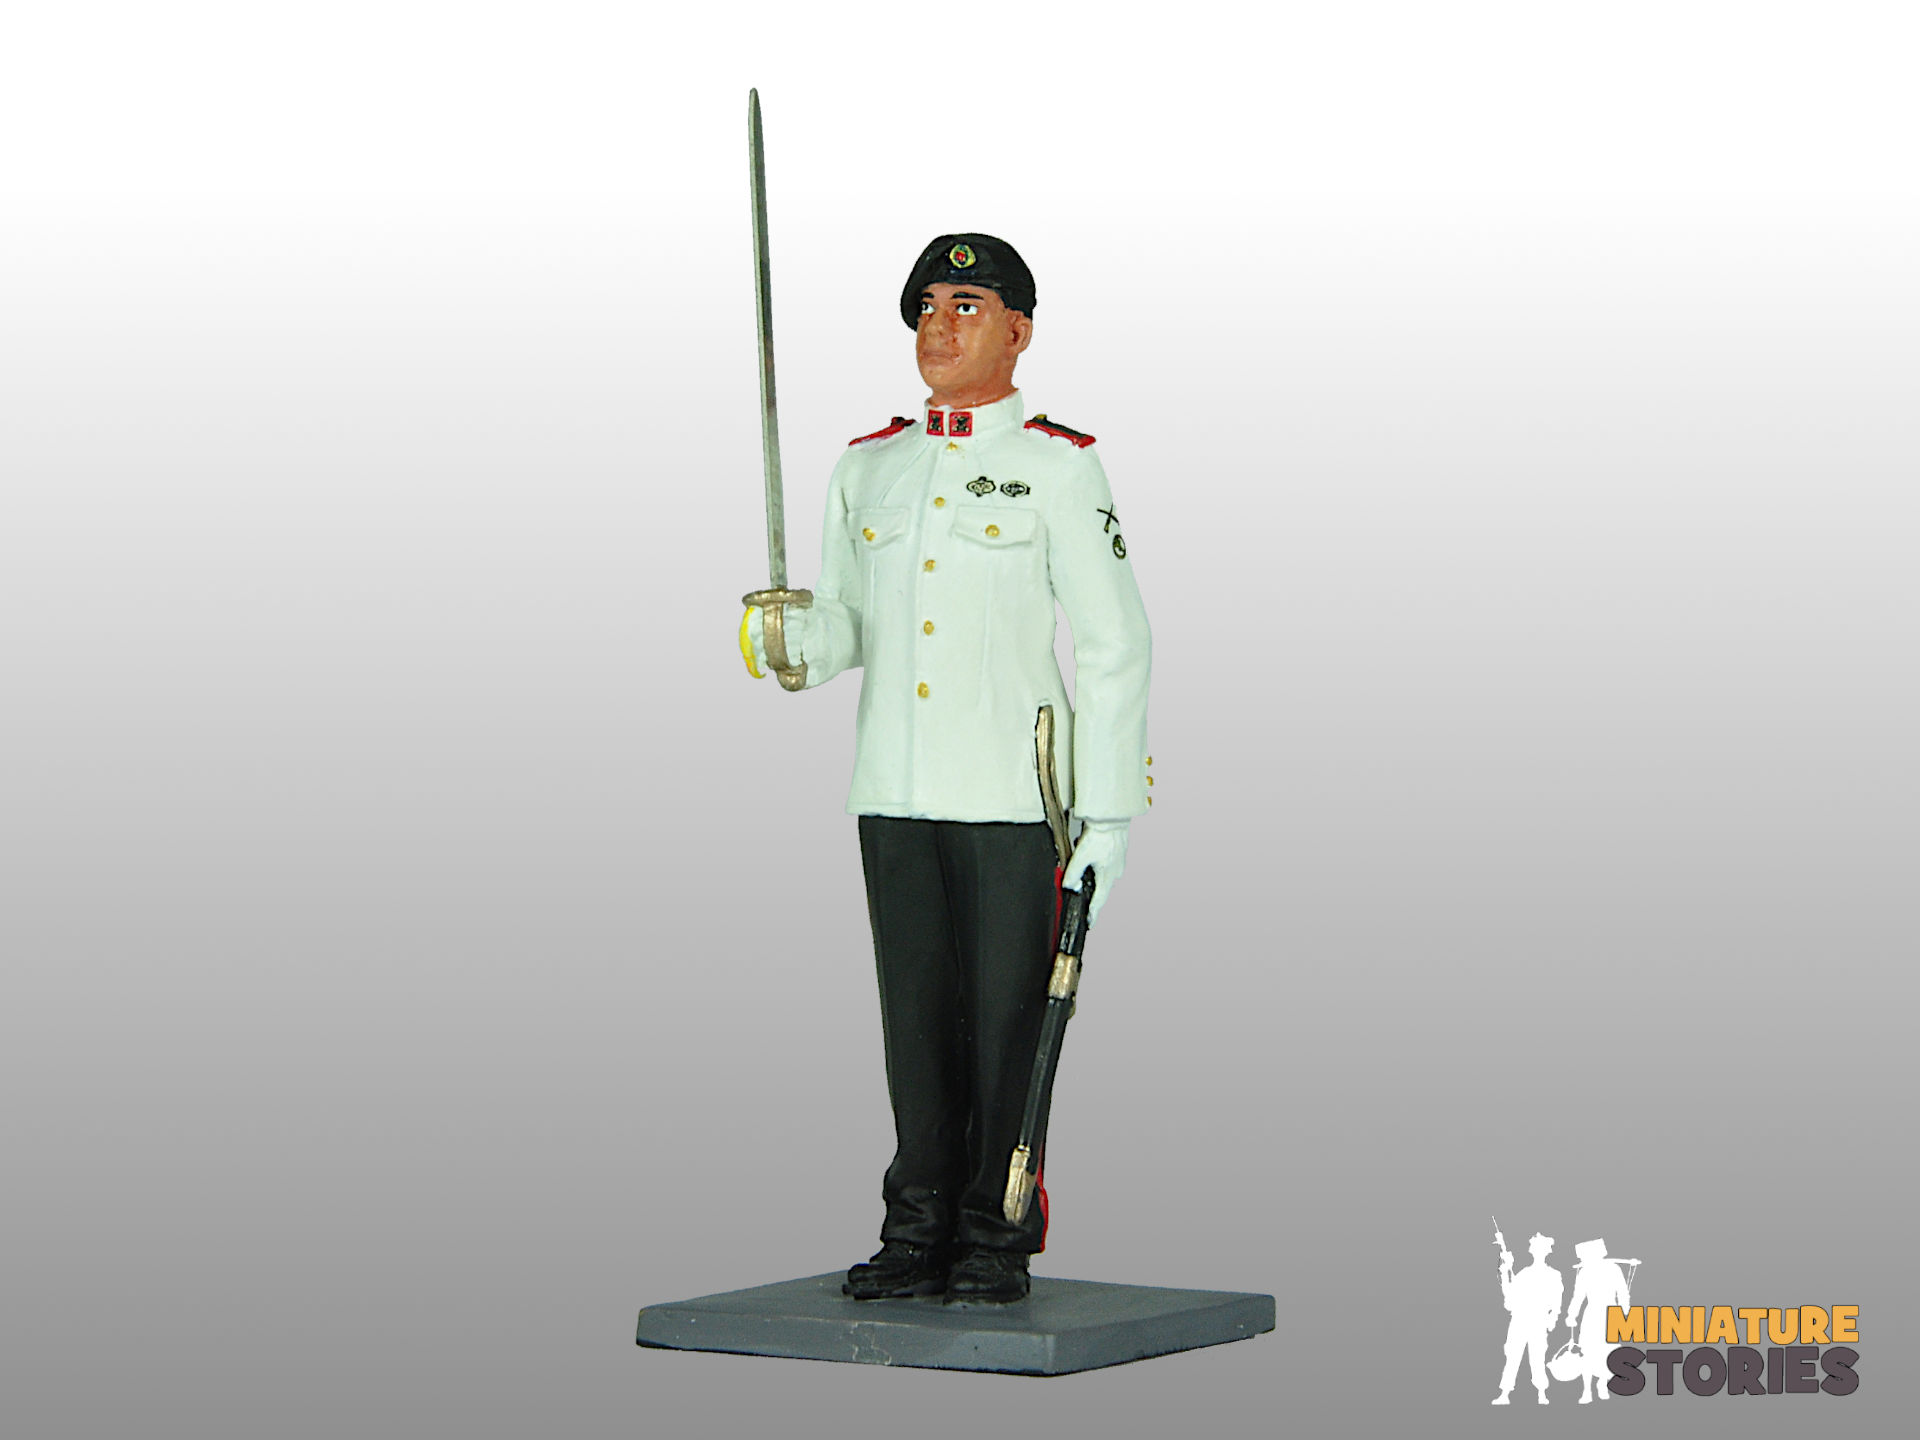 Miniature Stories Armour Officer Figurine in No. 1 Ceremonial Dress